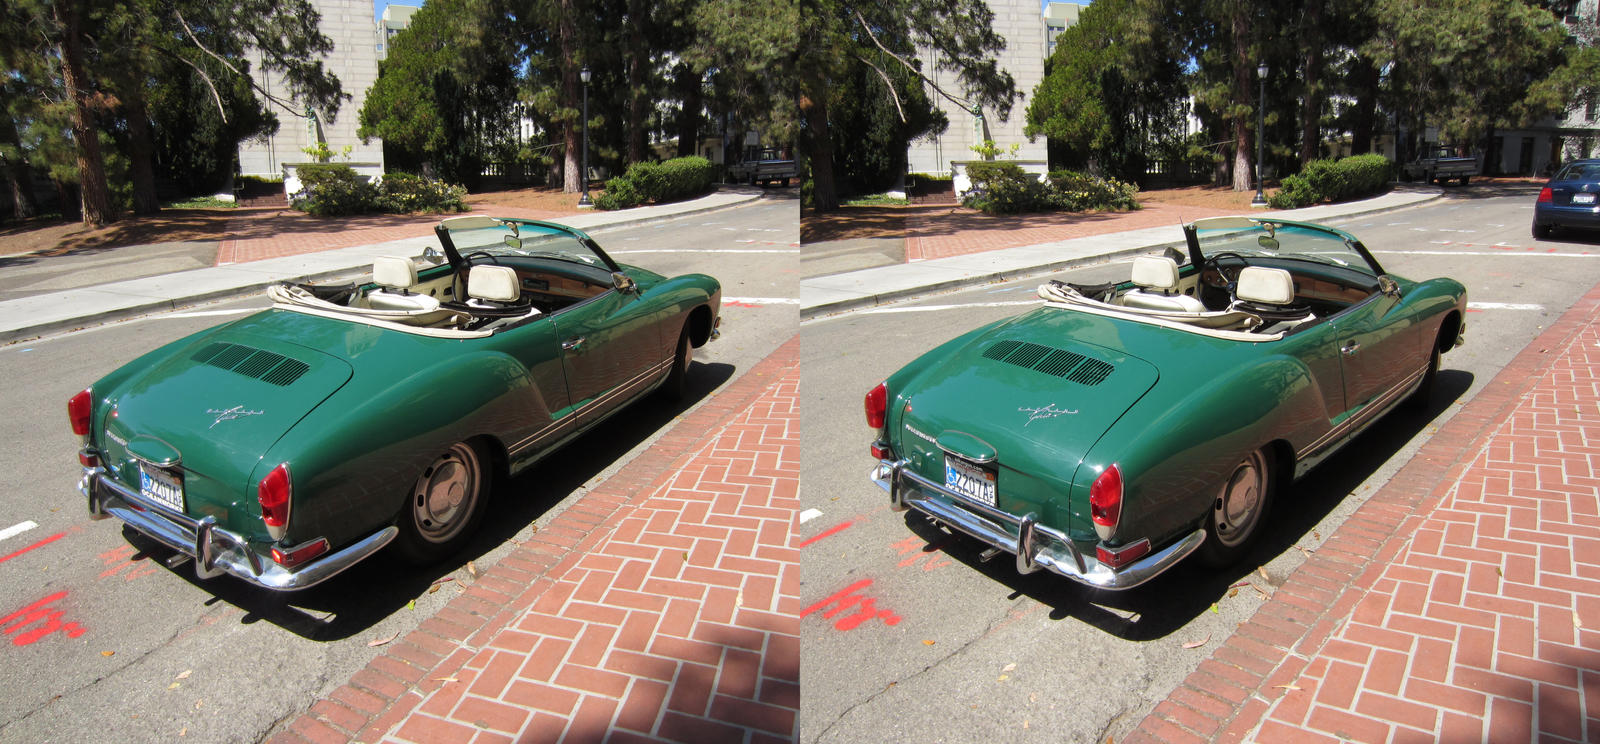 Stereograph - Green Car by alanbecker